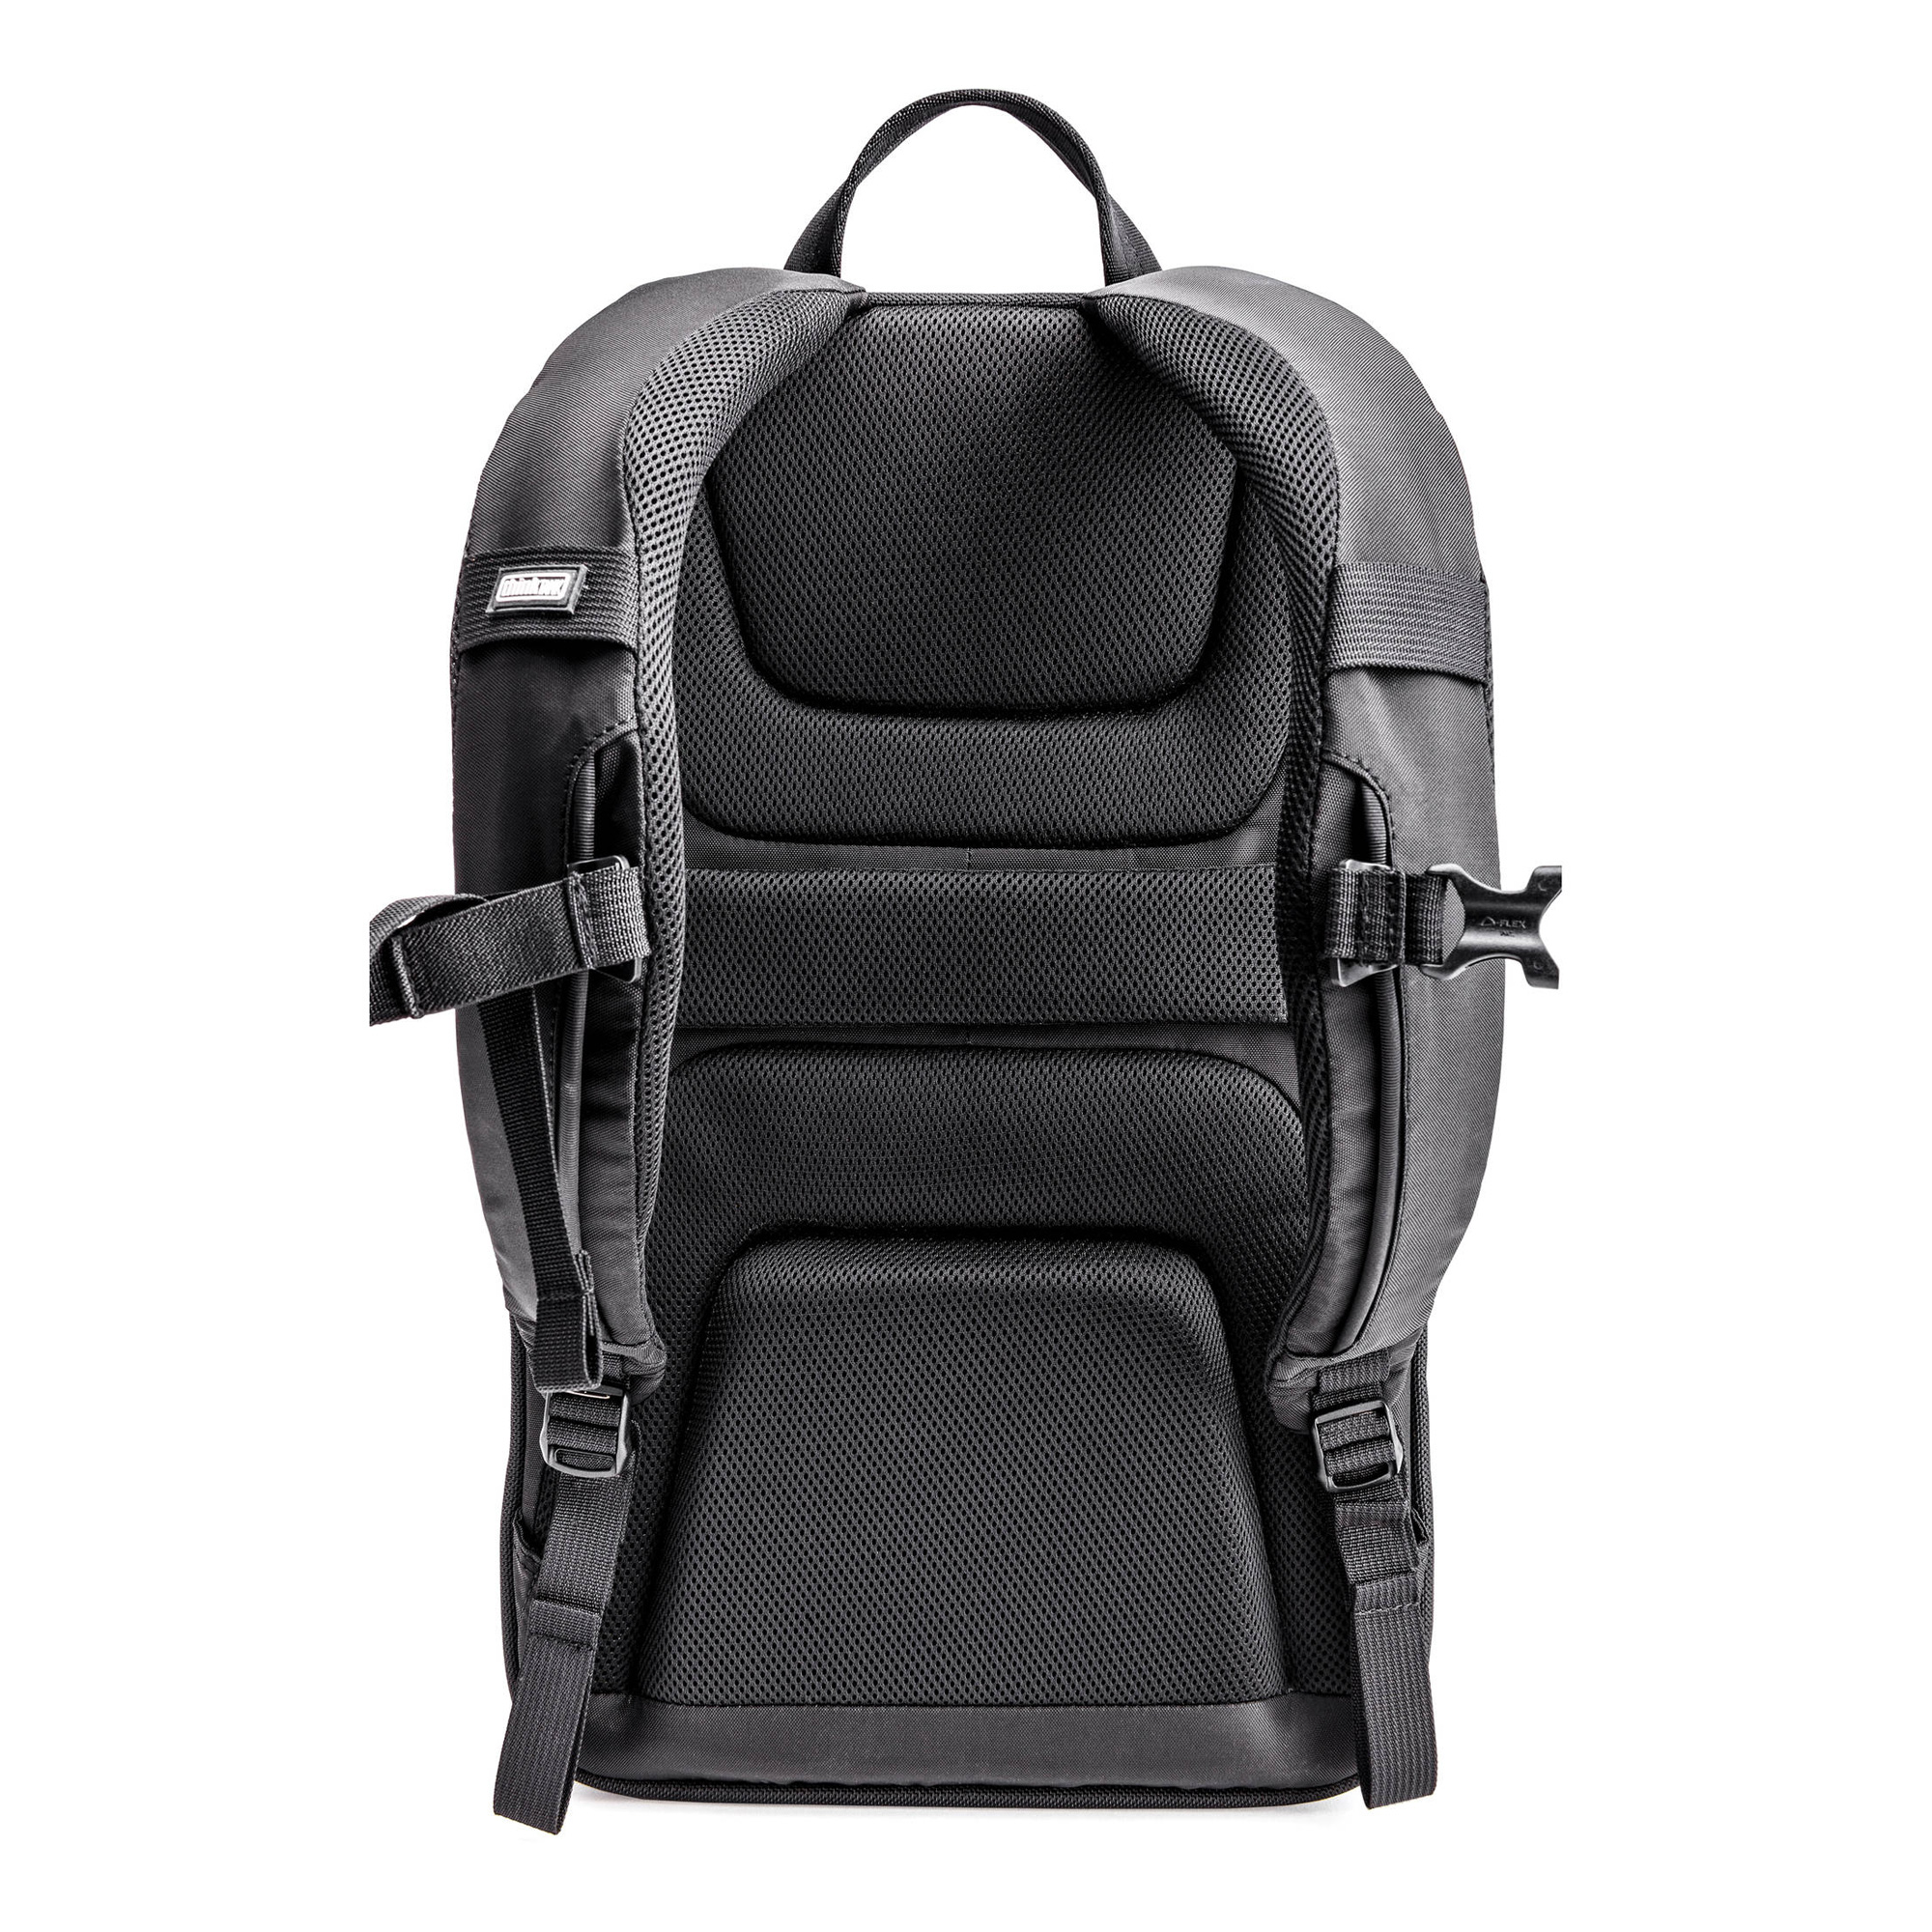 Urban Approach 15 Backpack for Mirrorless Camera Systems Black